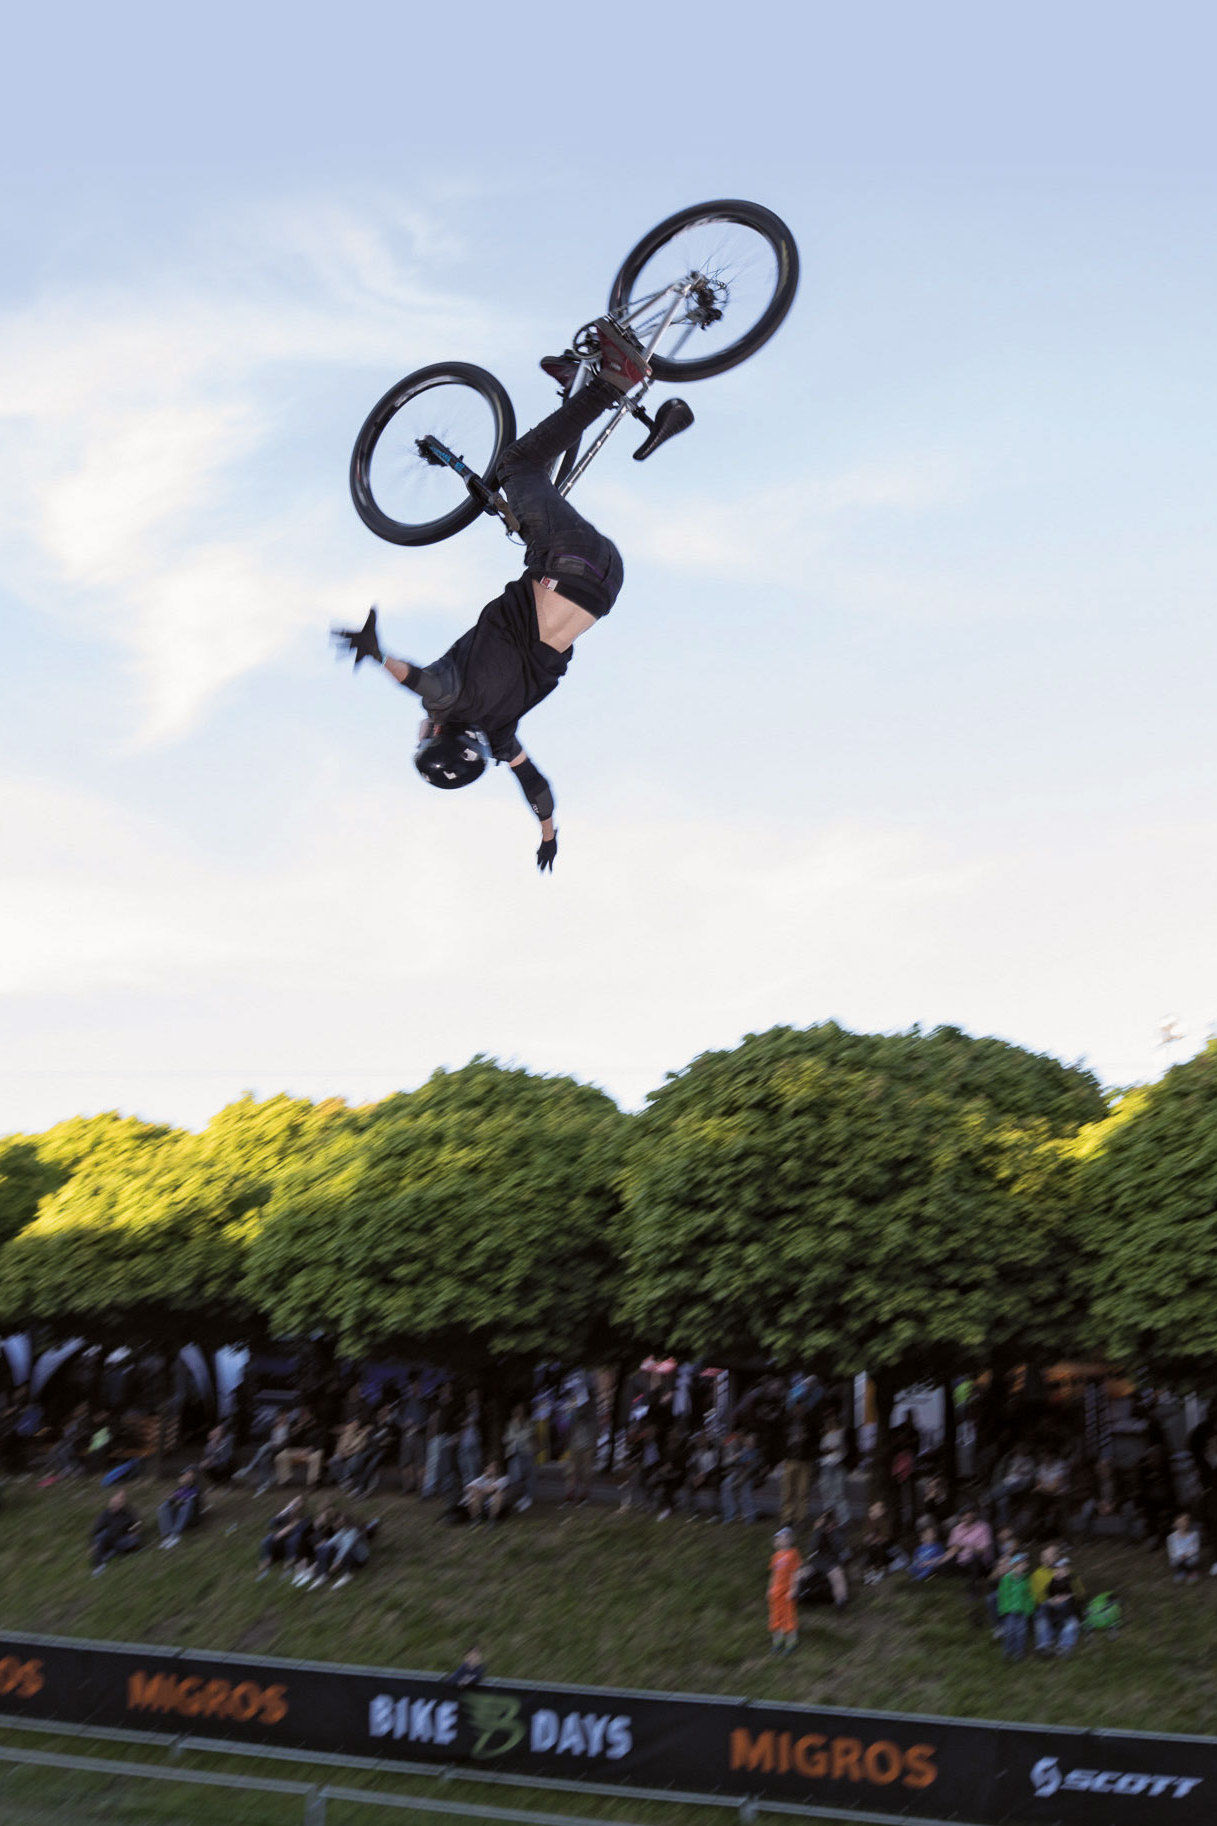 Der MTB-Dirtjump-Contest mit internationalen Top-Shots begeistert das Publikum in Solothurn.